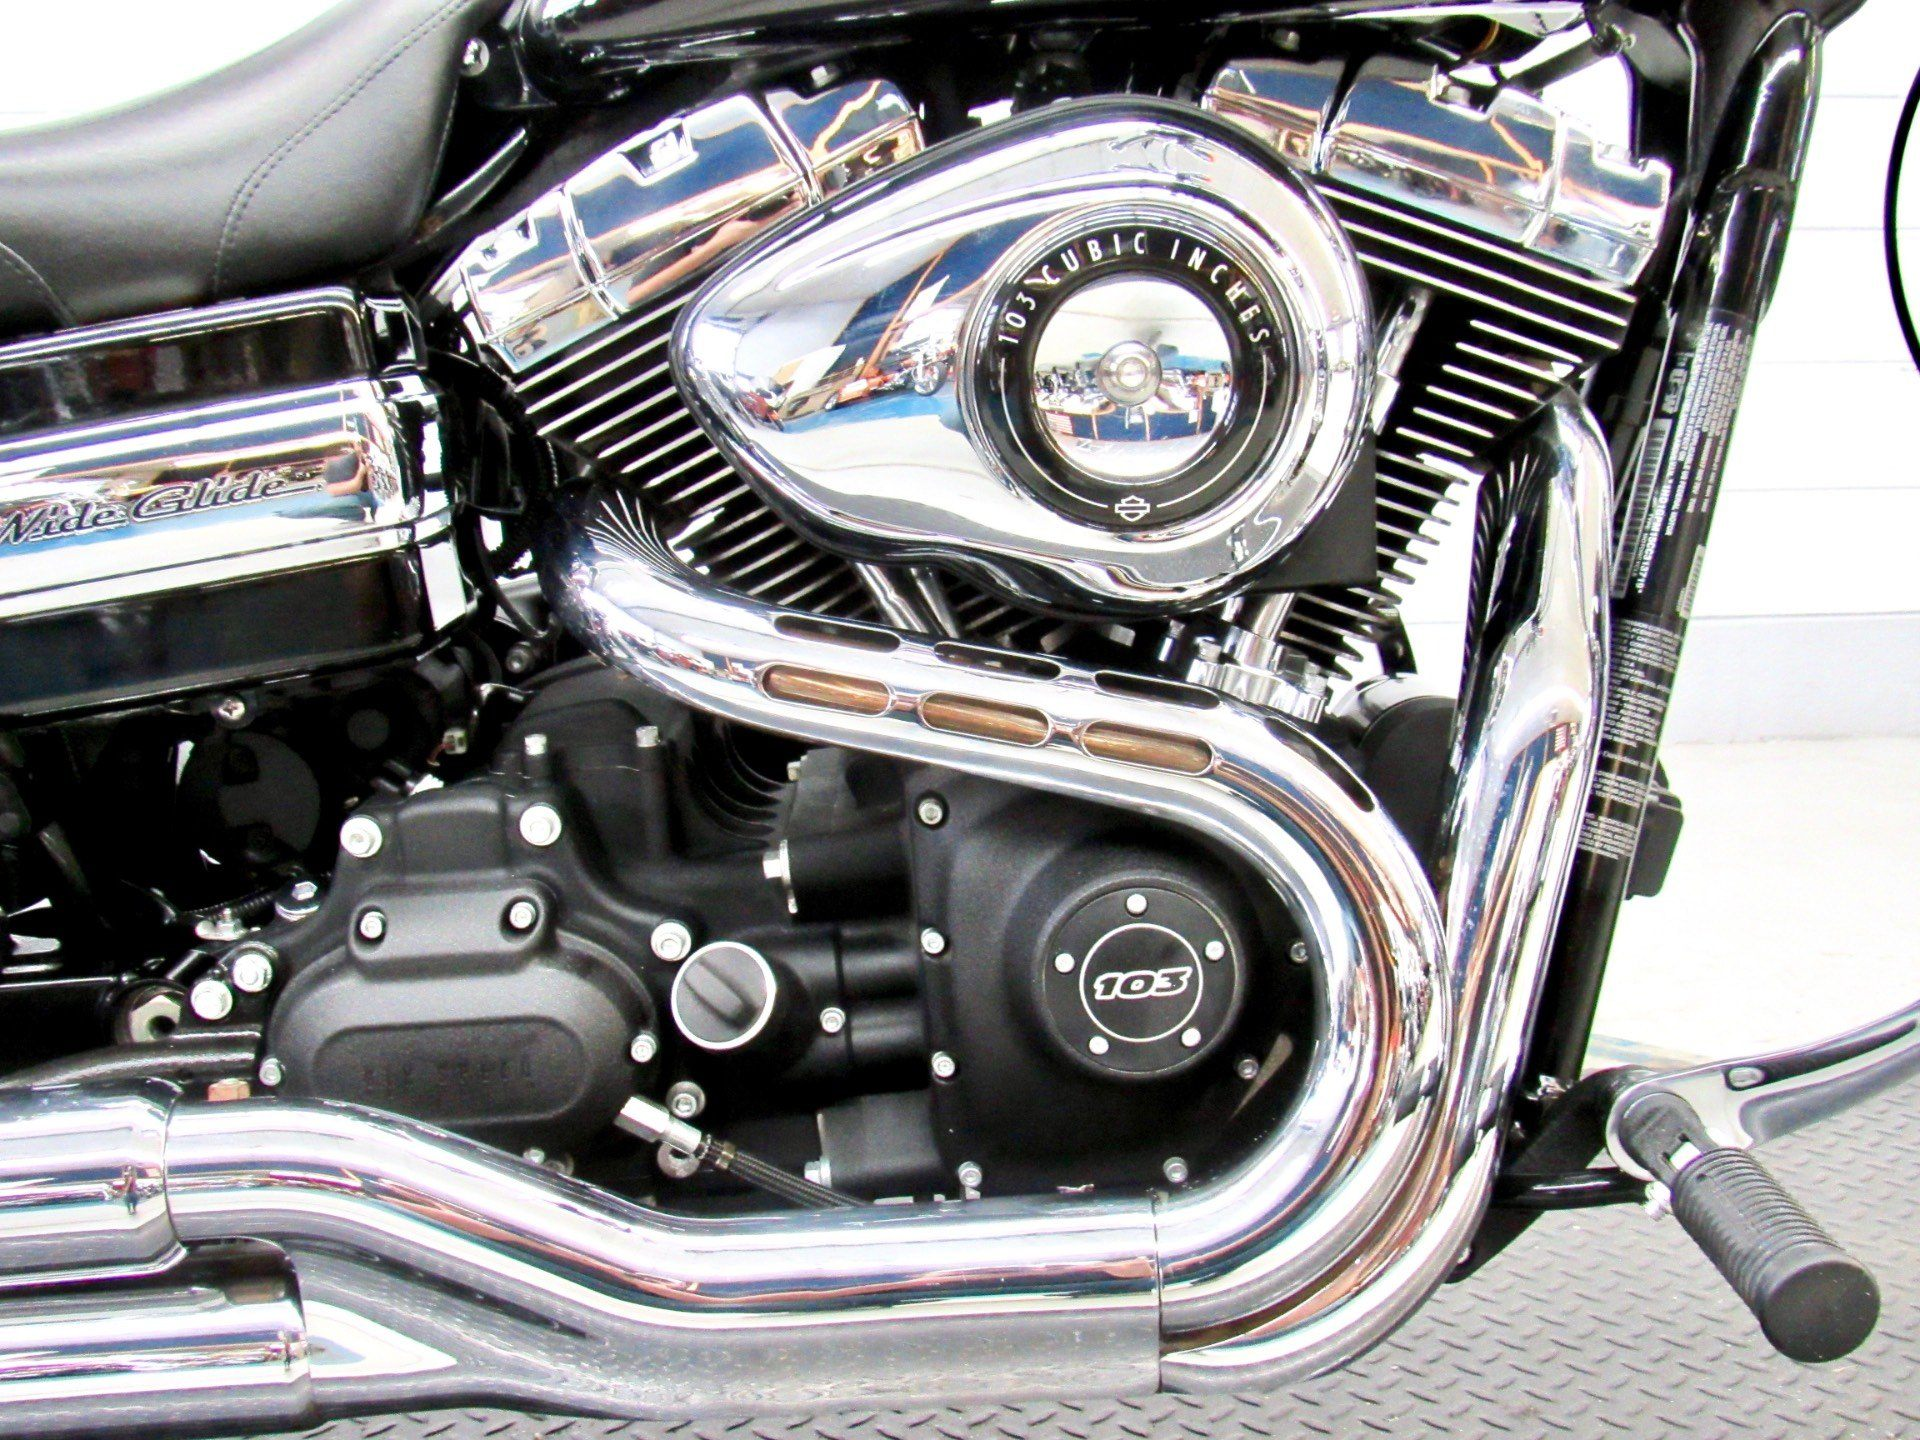 2012 Harley-Davidson Dyna® Wide Glide® in Fredericksburg, Virginia - Photo 14